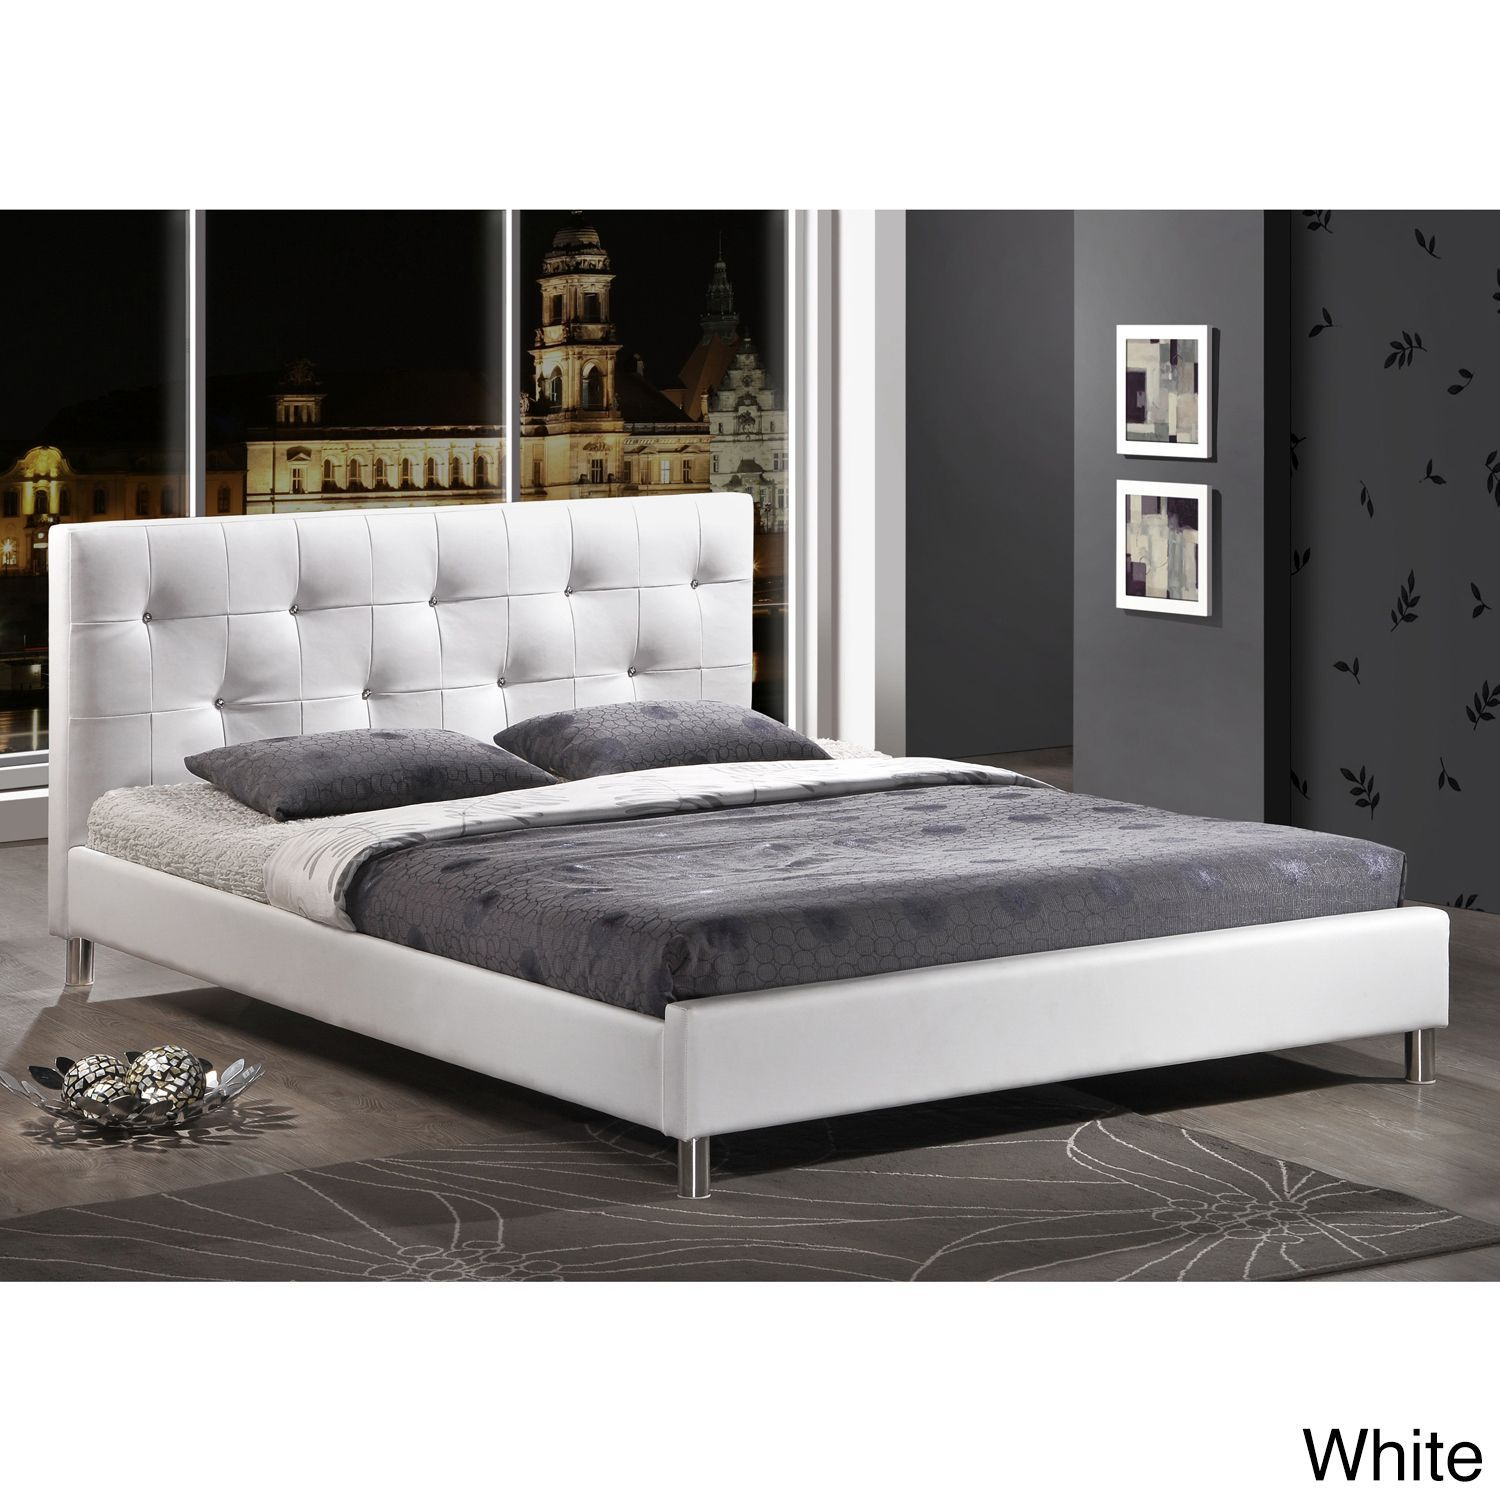 Modern King Bed Frame Designs Darbylanefurniture Com In 2020 Modern Bed Frame Modern King Bed Bed Frame Design